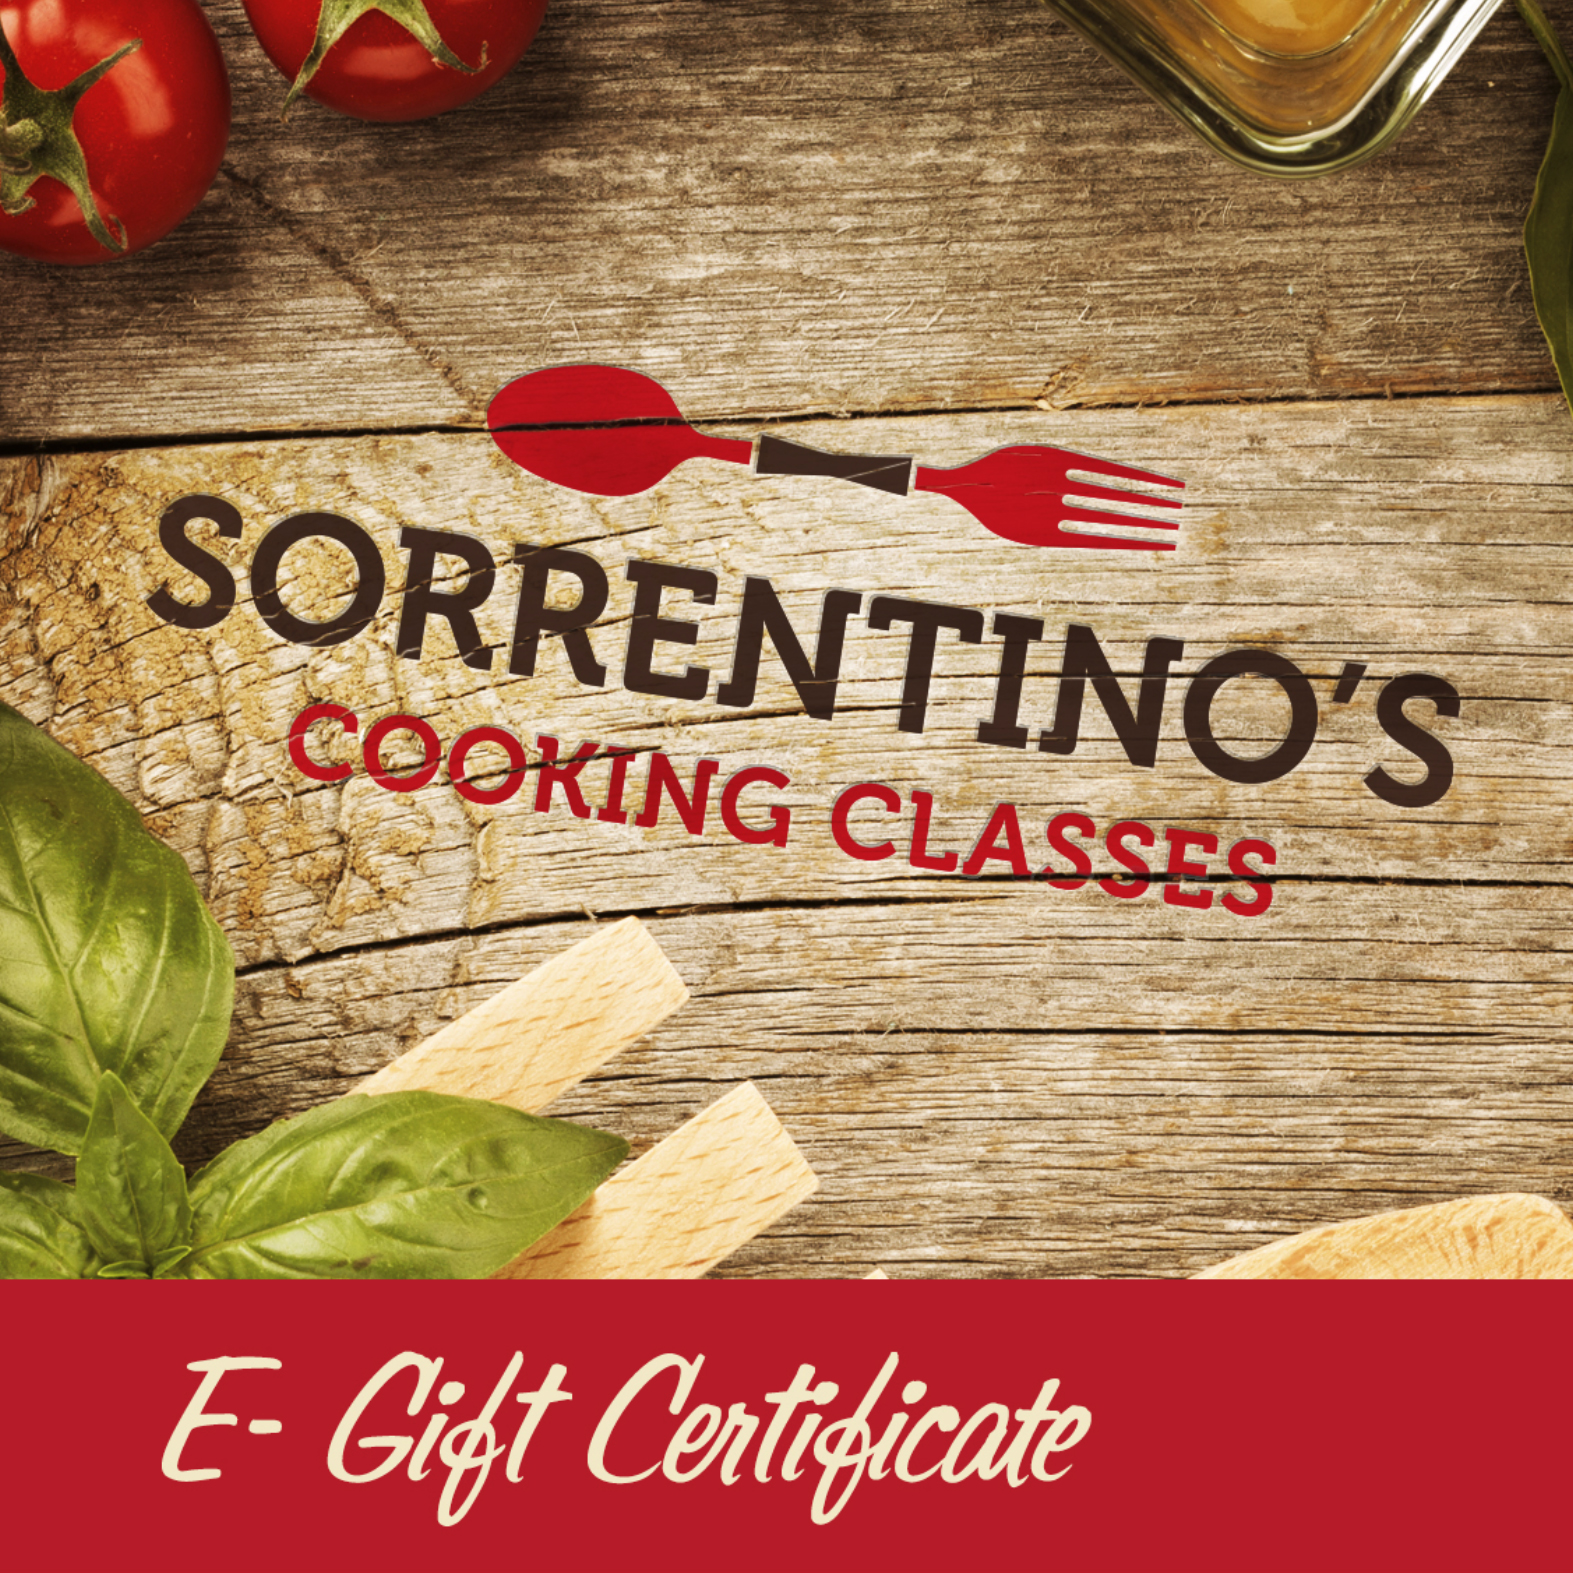 cooking class e gift certificate sorrentino s restaurant group